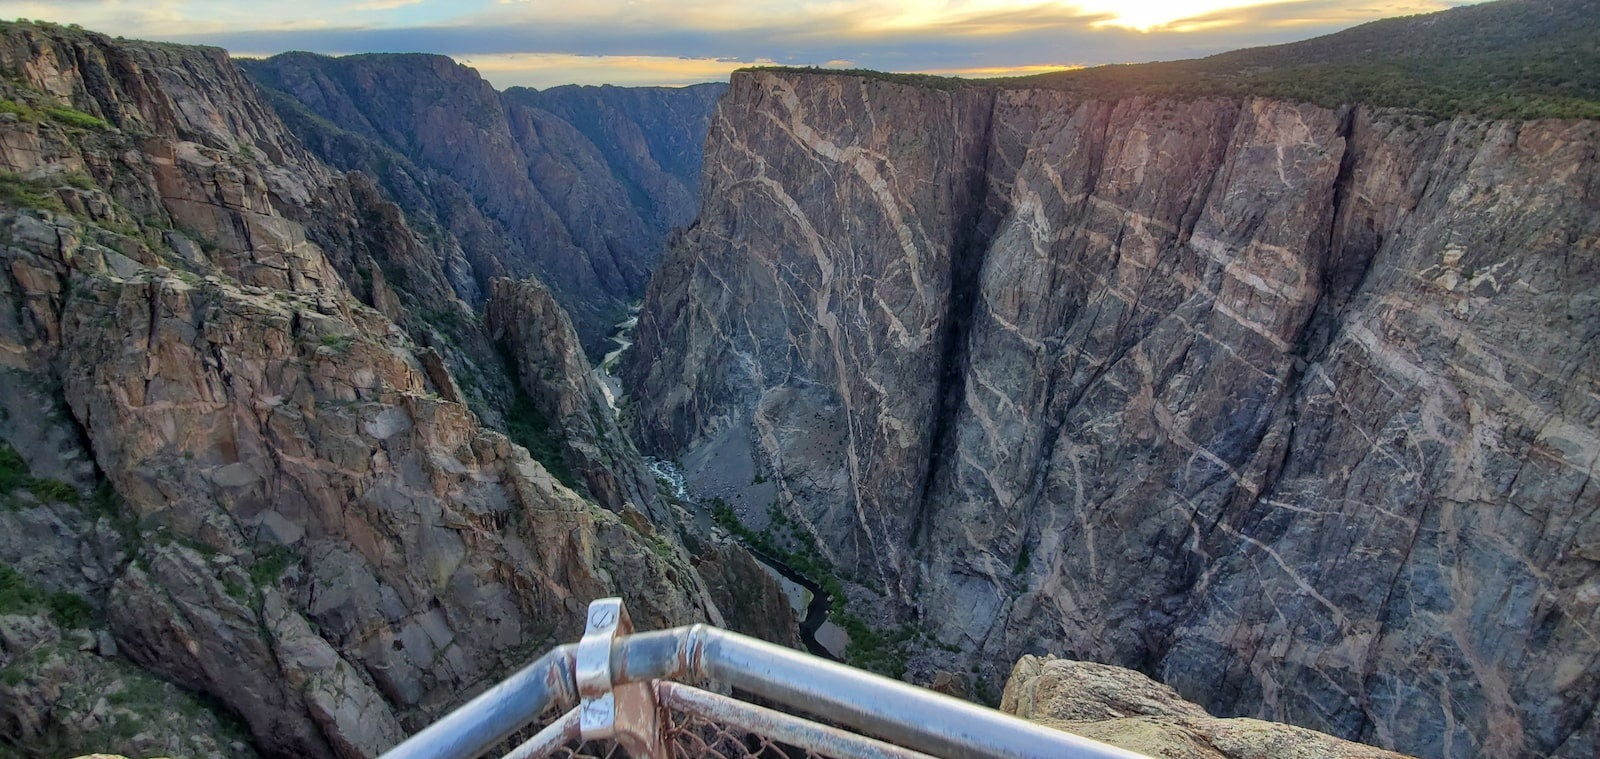 View from the South Rim of Gunnison Black Canyon in Colorado.